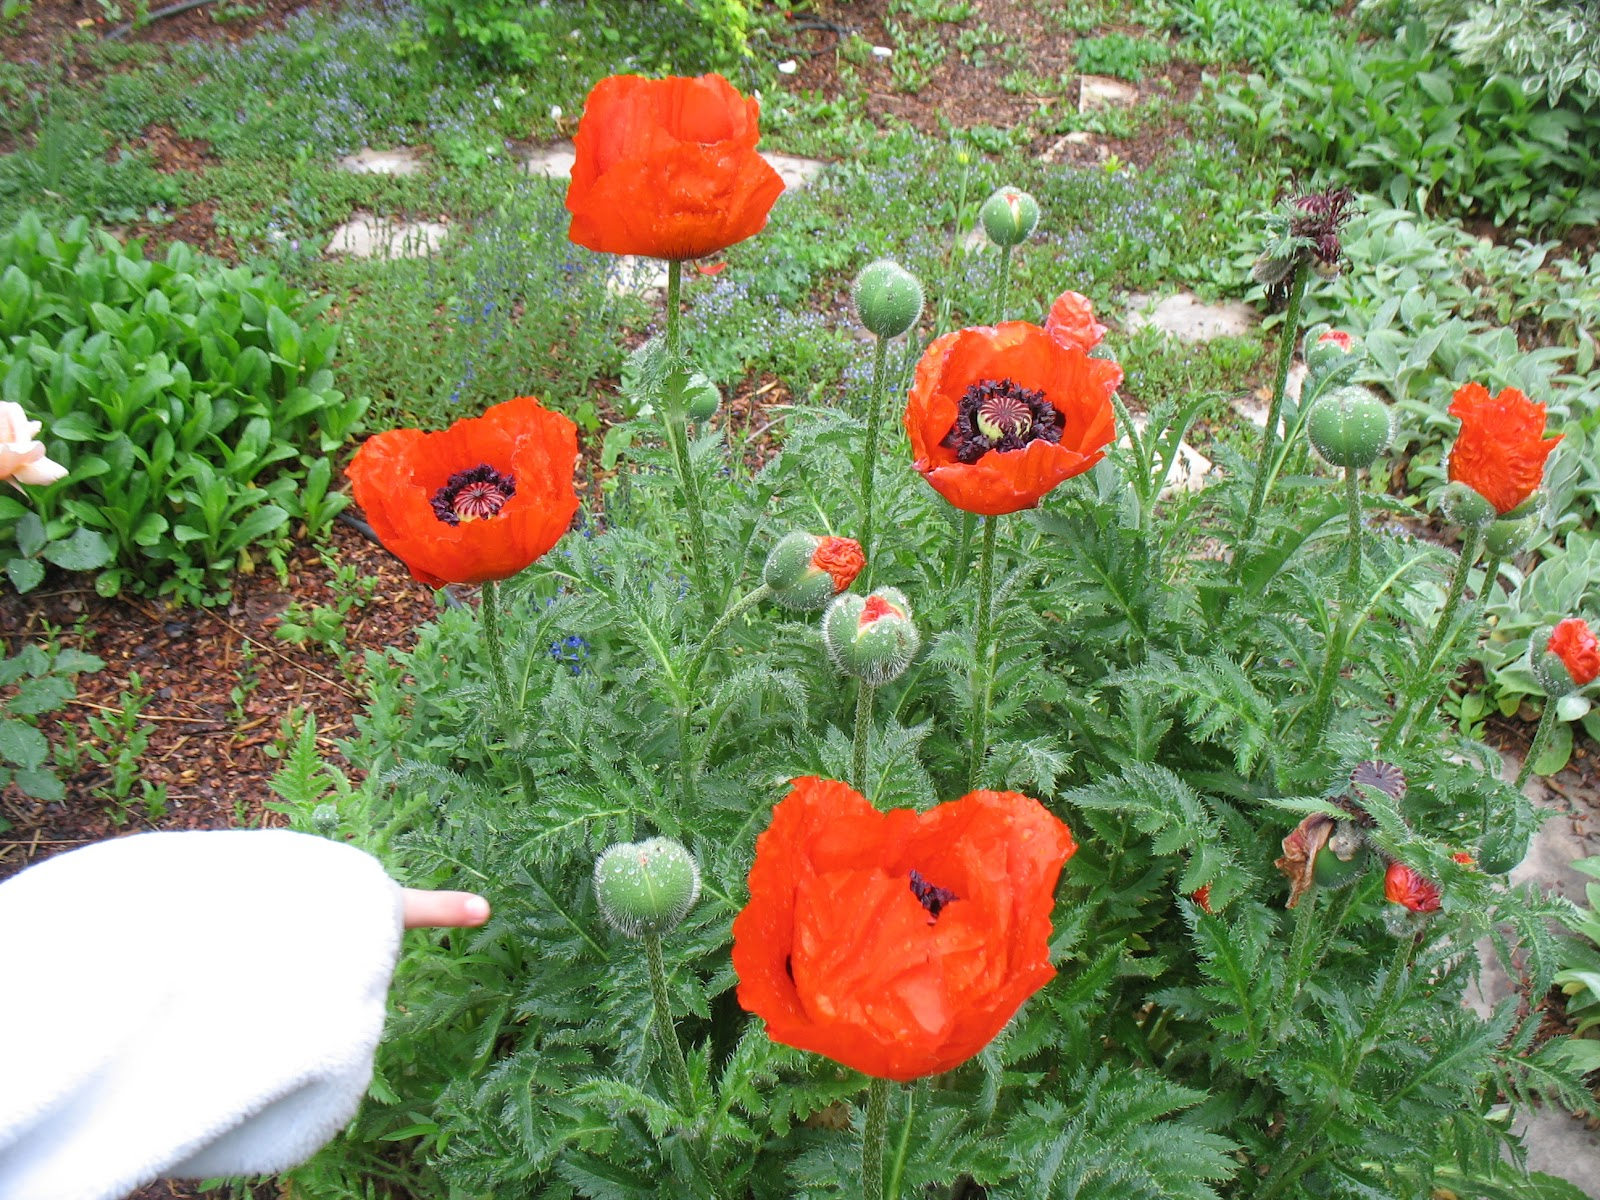 Drawn poppy flower leaves Watercolor Painting buds but some